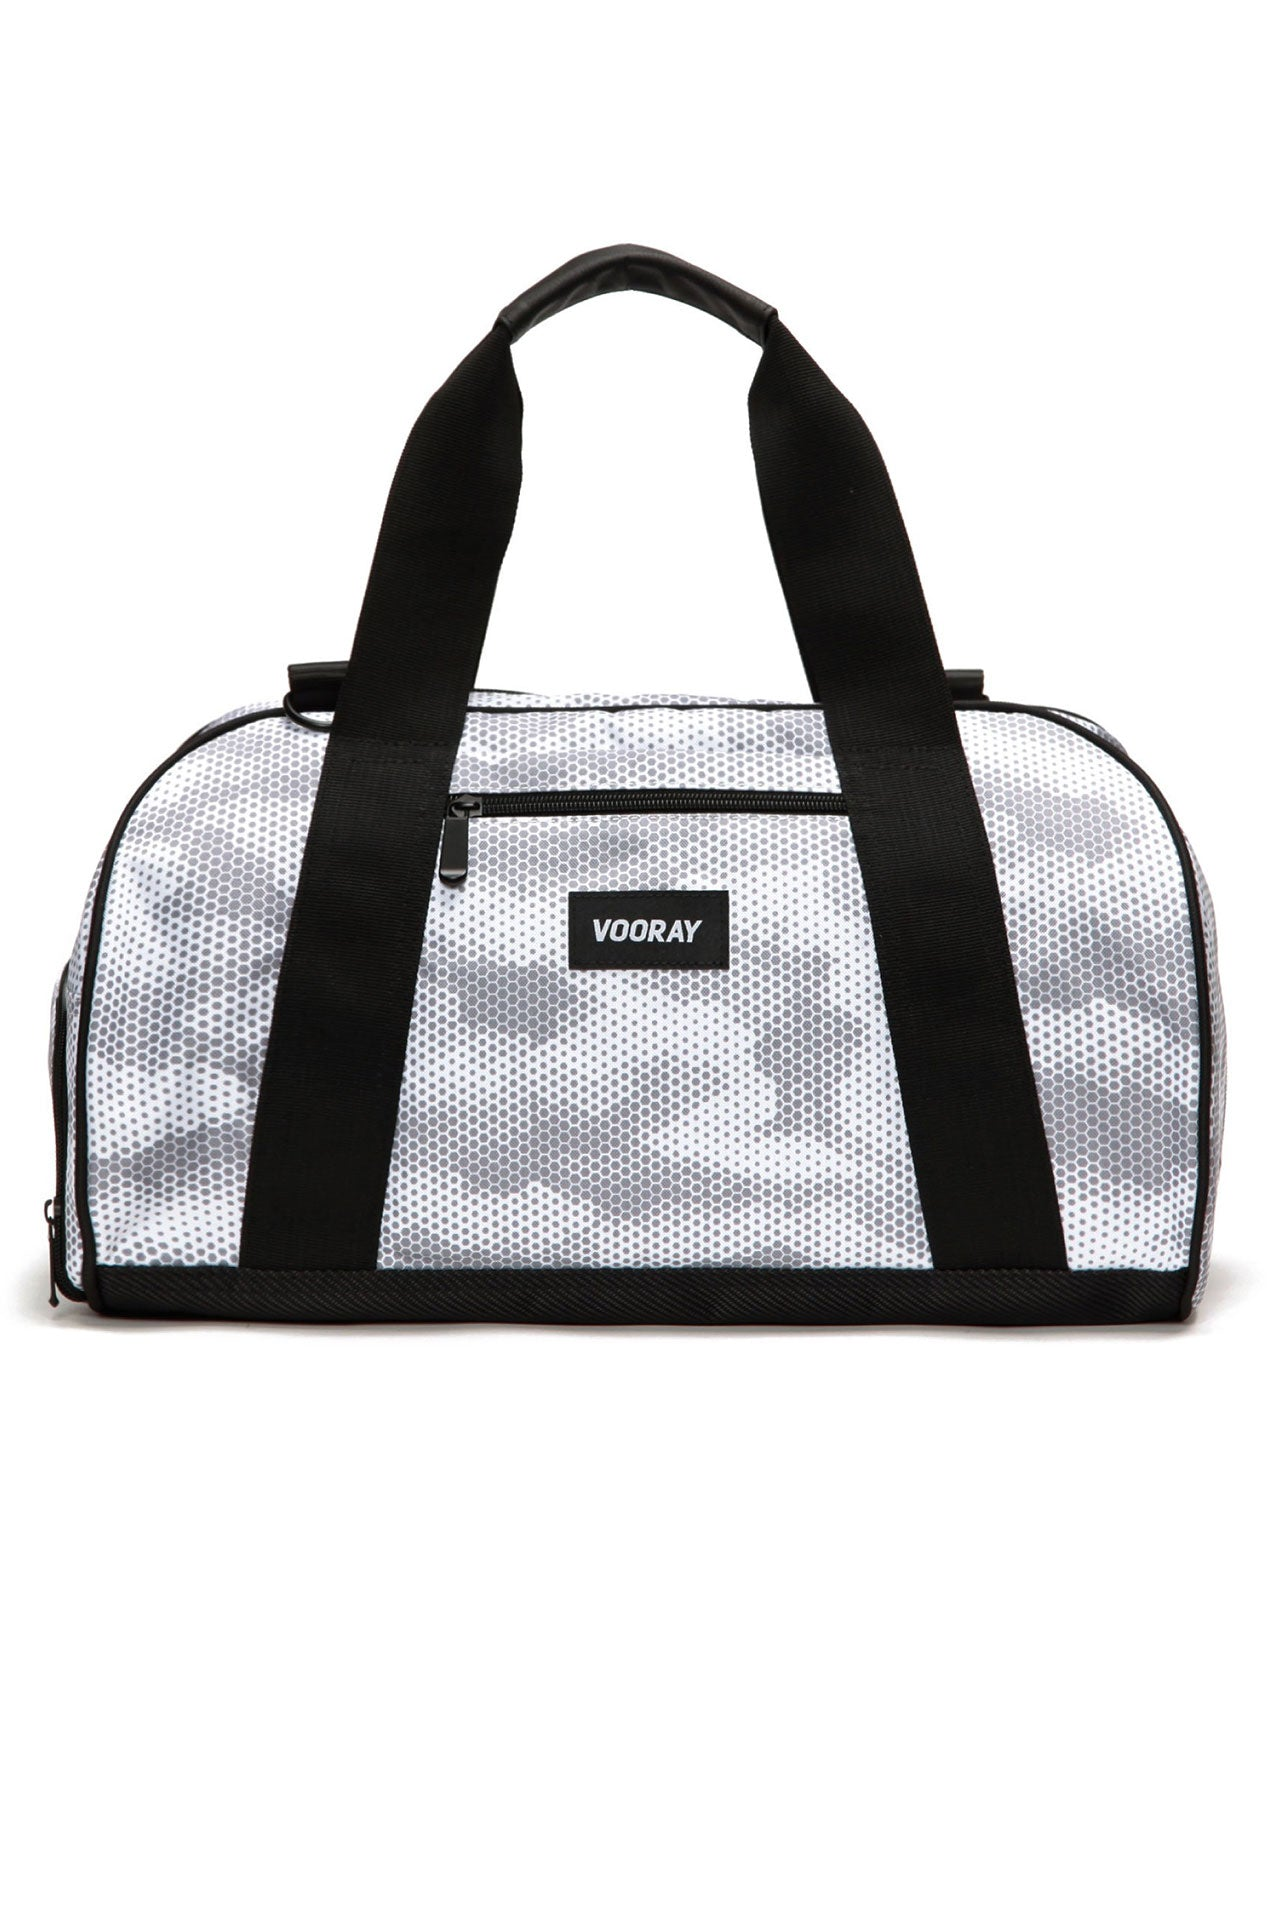 Vooray Burner Gym Duffel - Snow Hex Camo - Sculptique